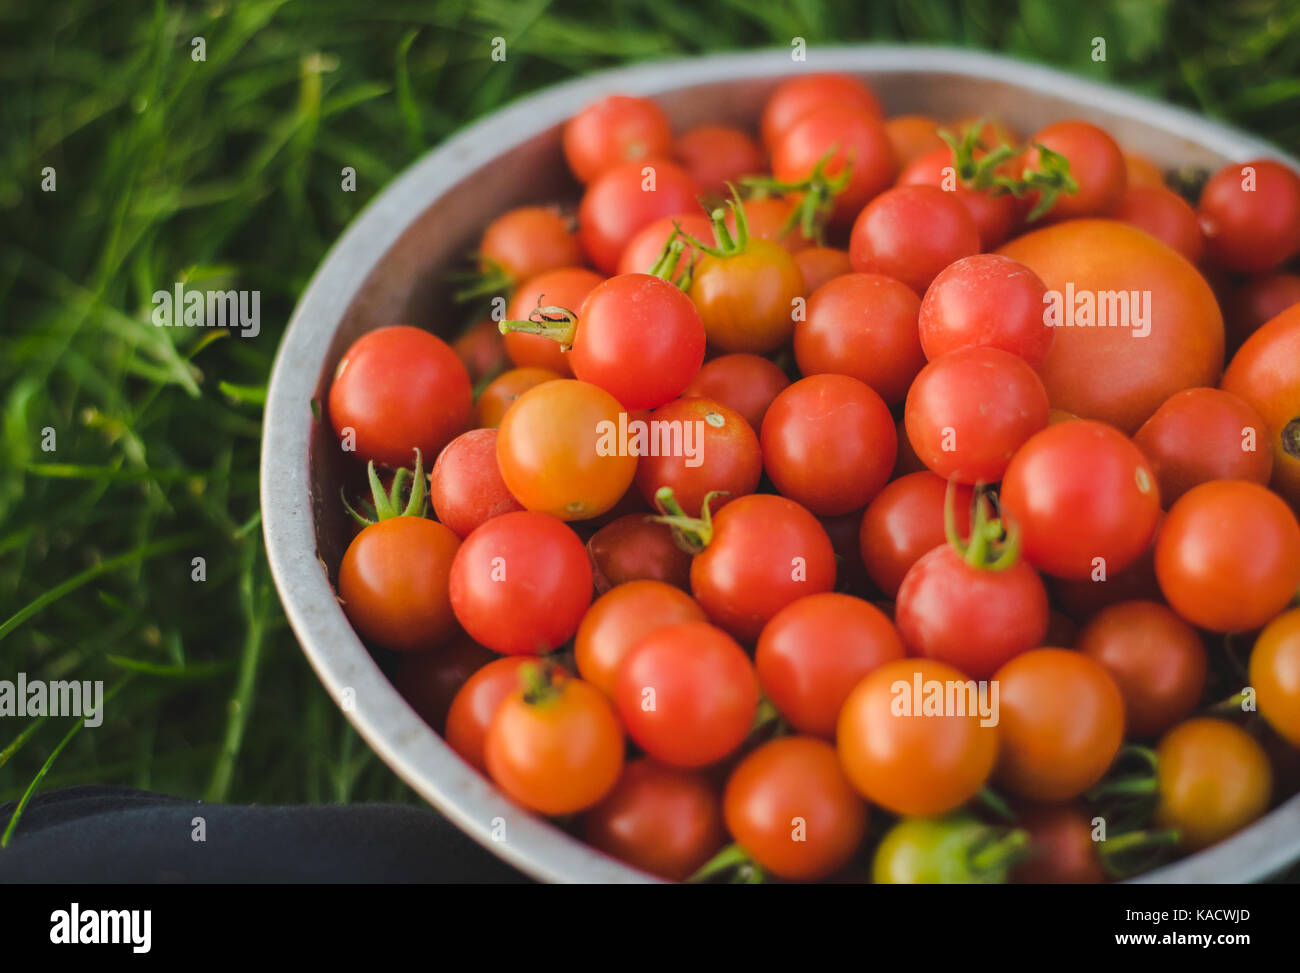 Fresh cherry tomatoes in a colander. - Stock Image